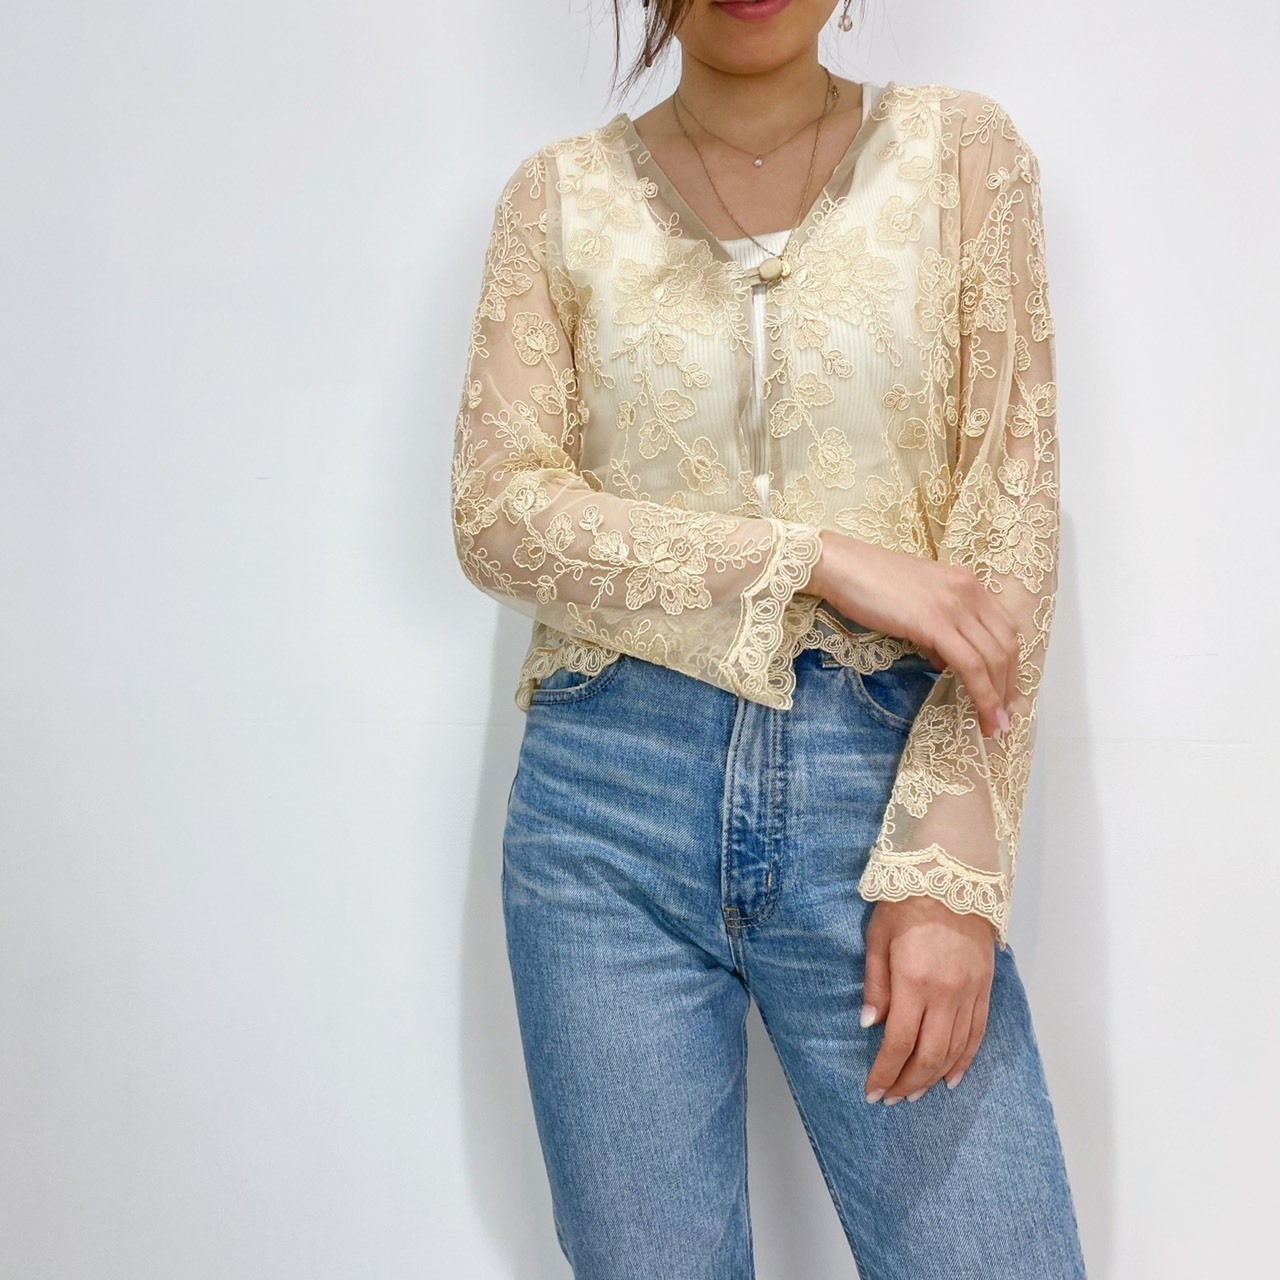 ◼︎90s silk blend lace blouse from U.S.A.◼︎